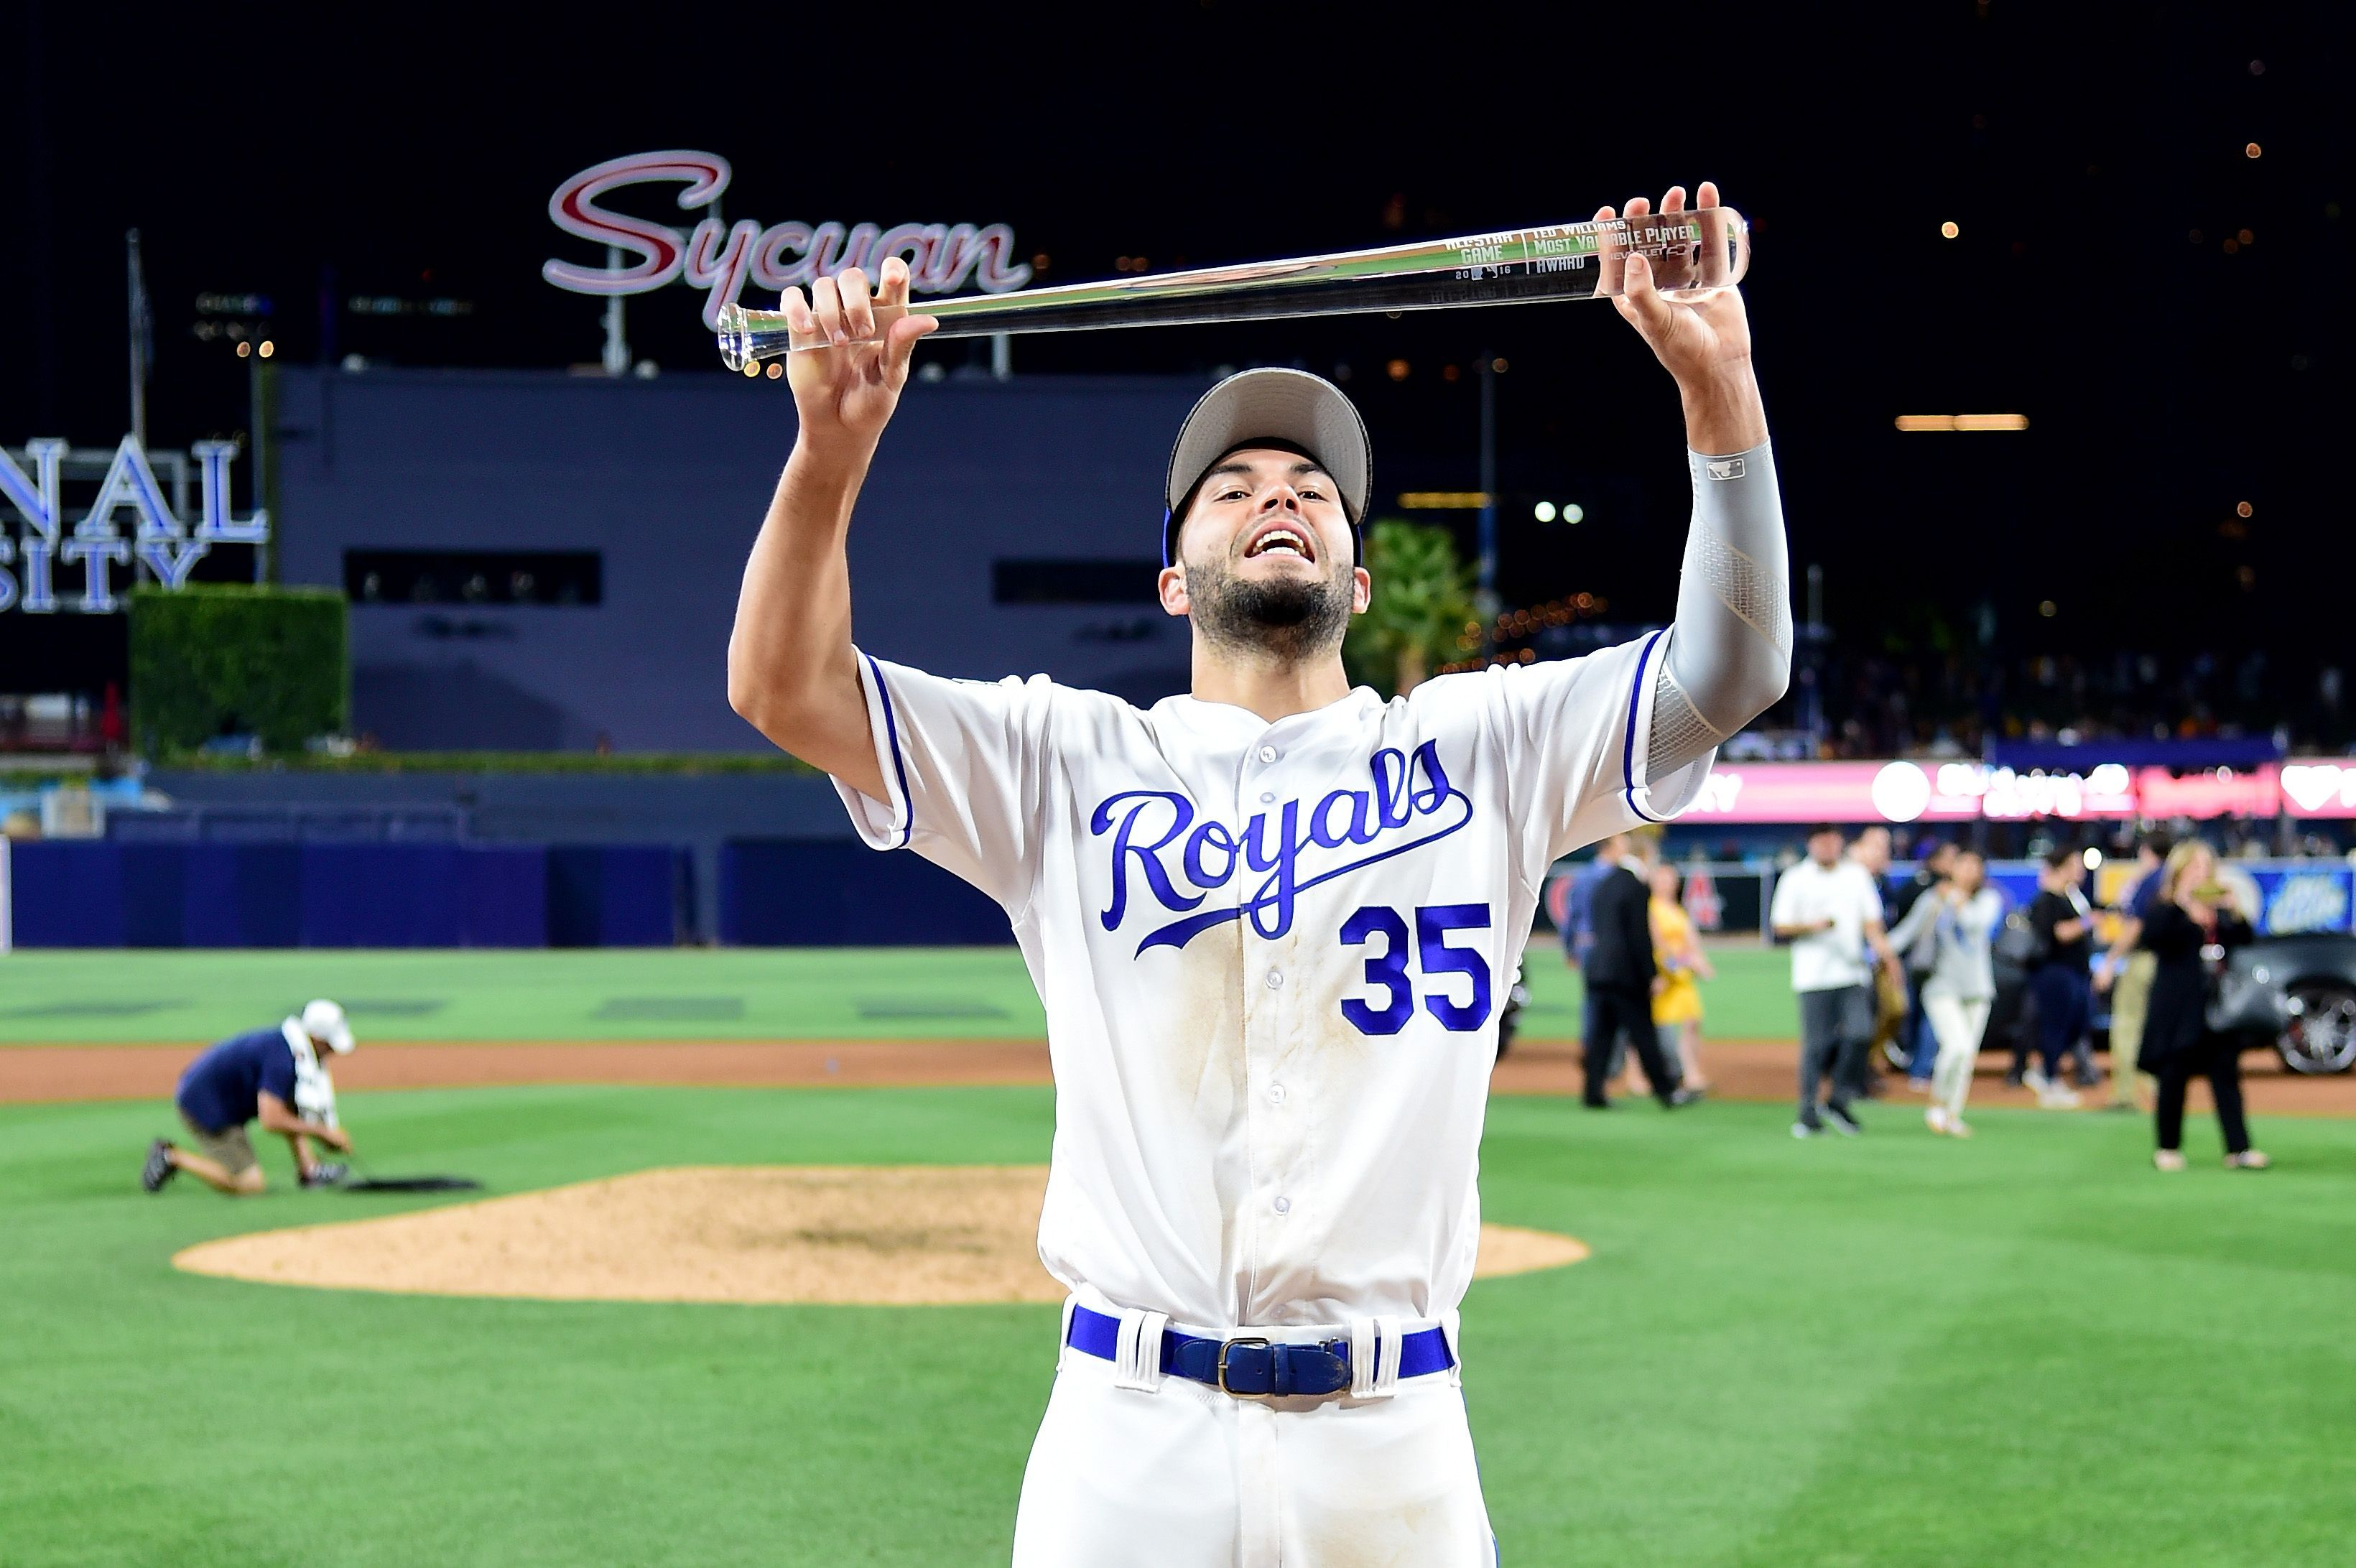 Before Winning All Star Mvp Eric Hosmer Hit A Ball So Hard It Tattooed His Bat Kc Royals Baseball Hosmer Eric Hosmer